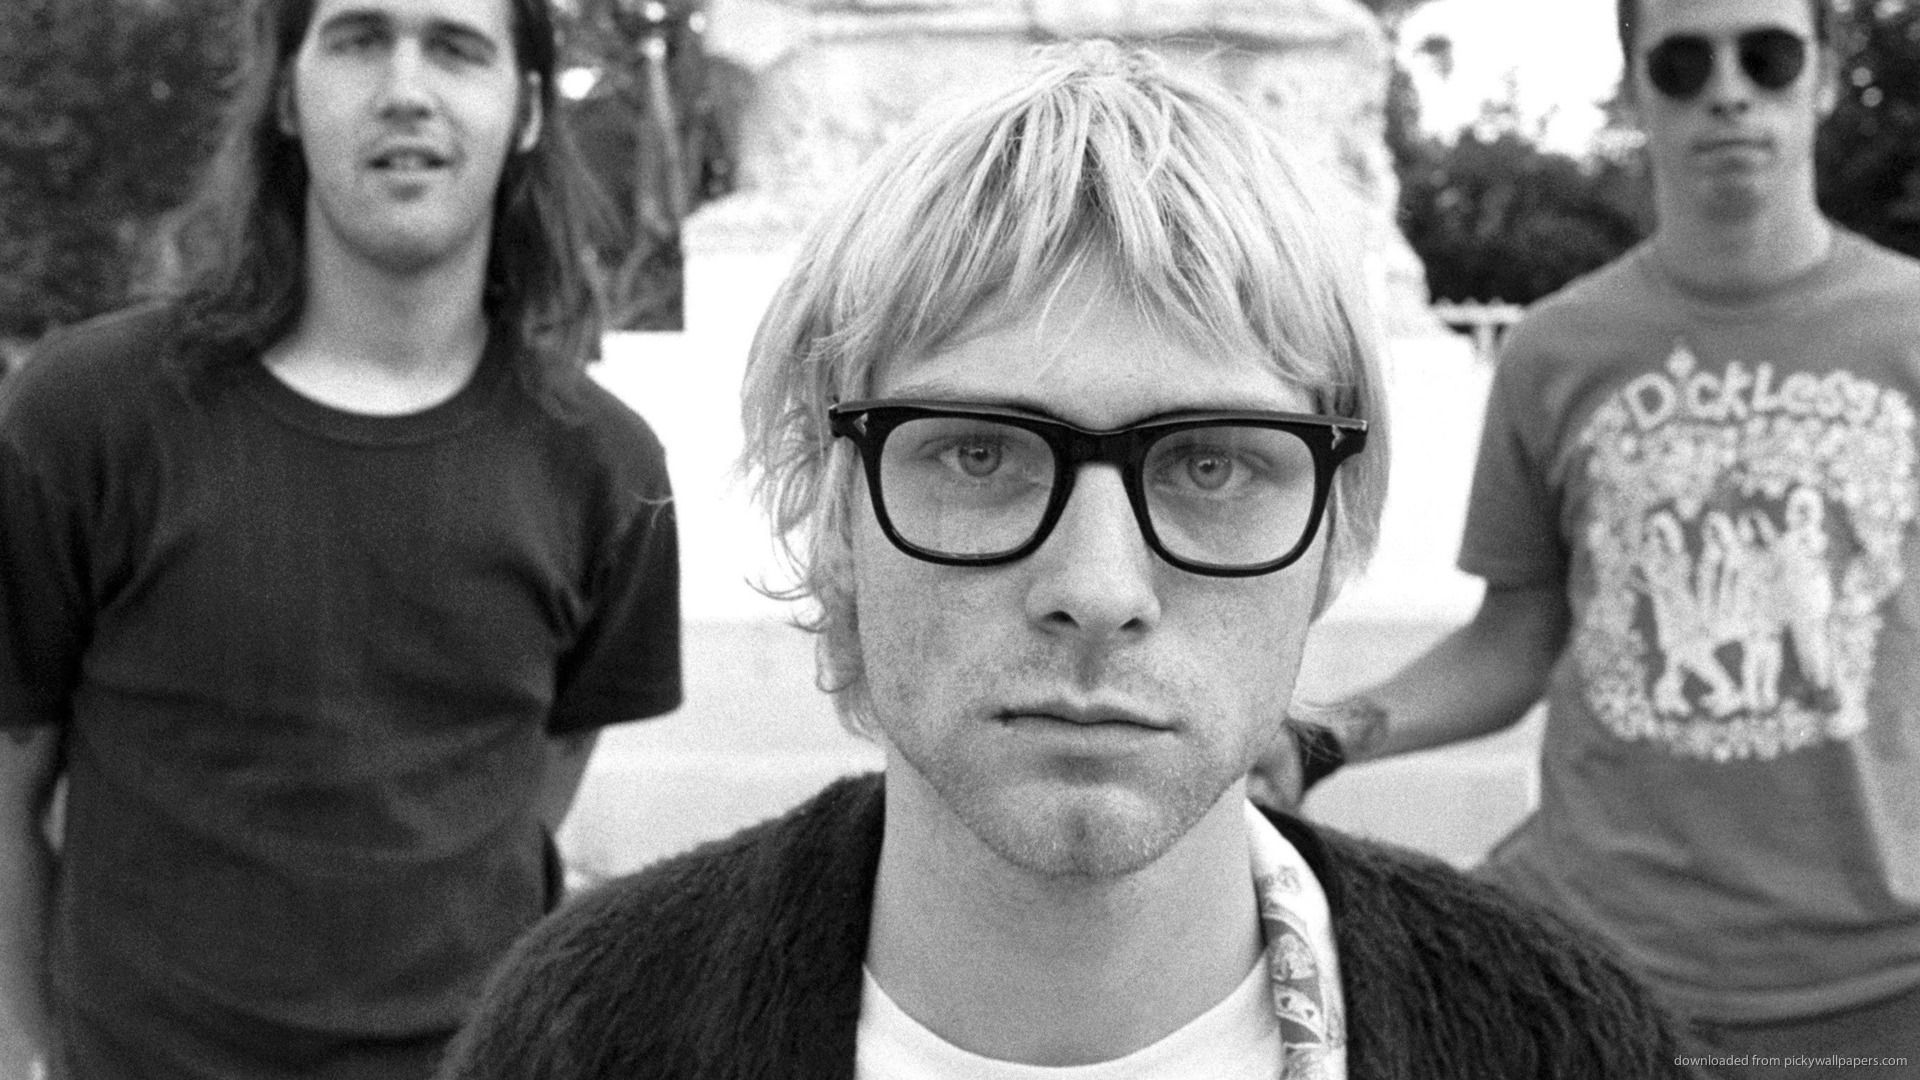 Pin by Grace Swanner on Kurt Cobain Nerd glasses